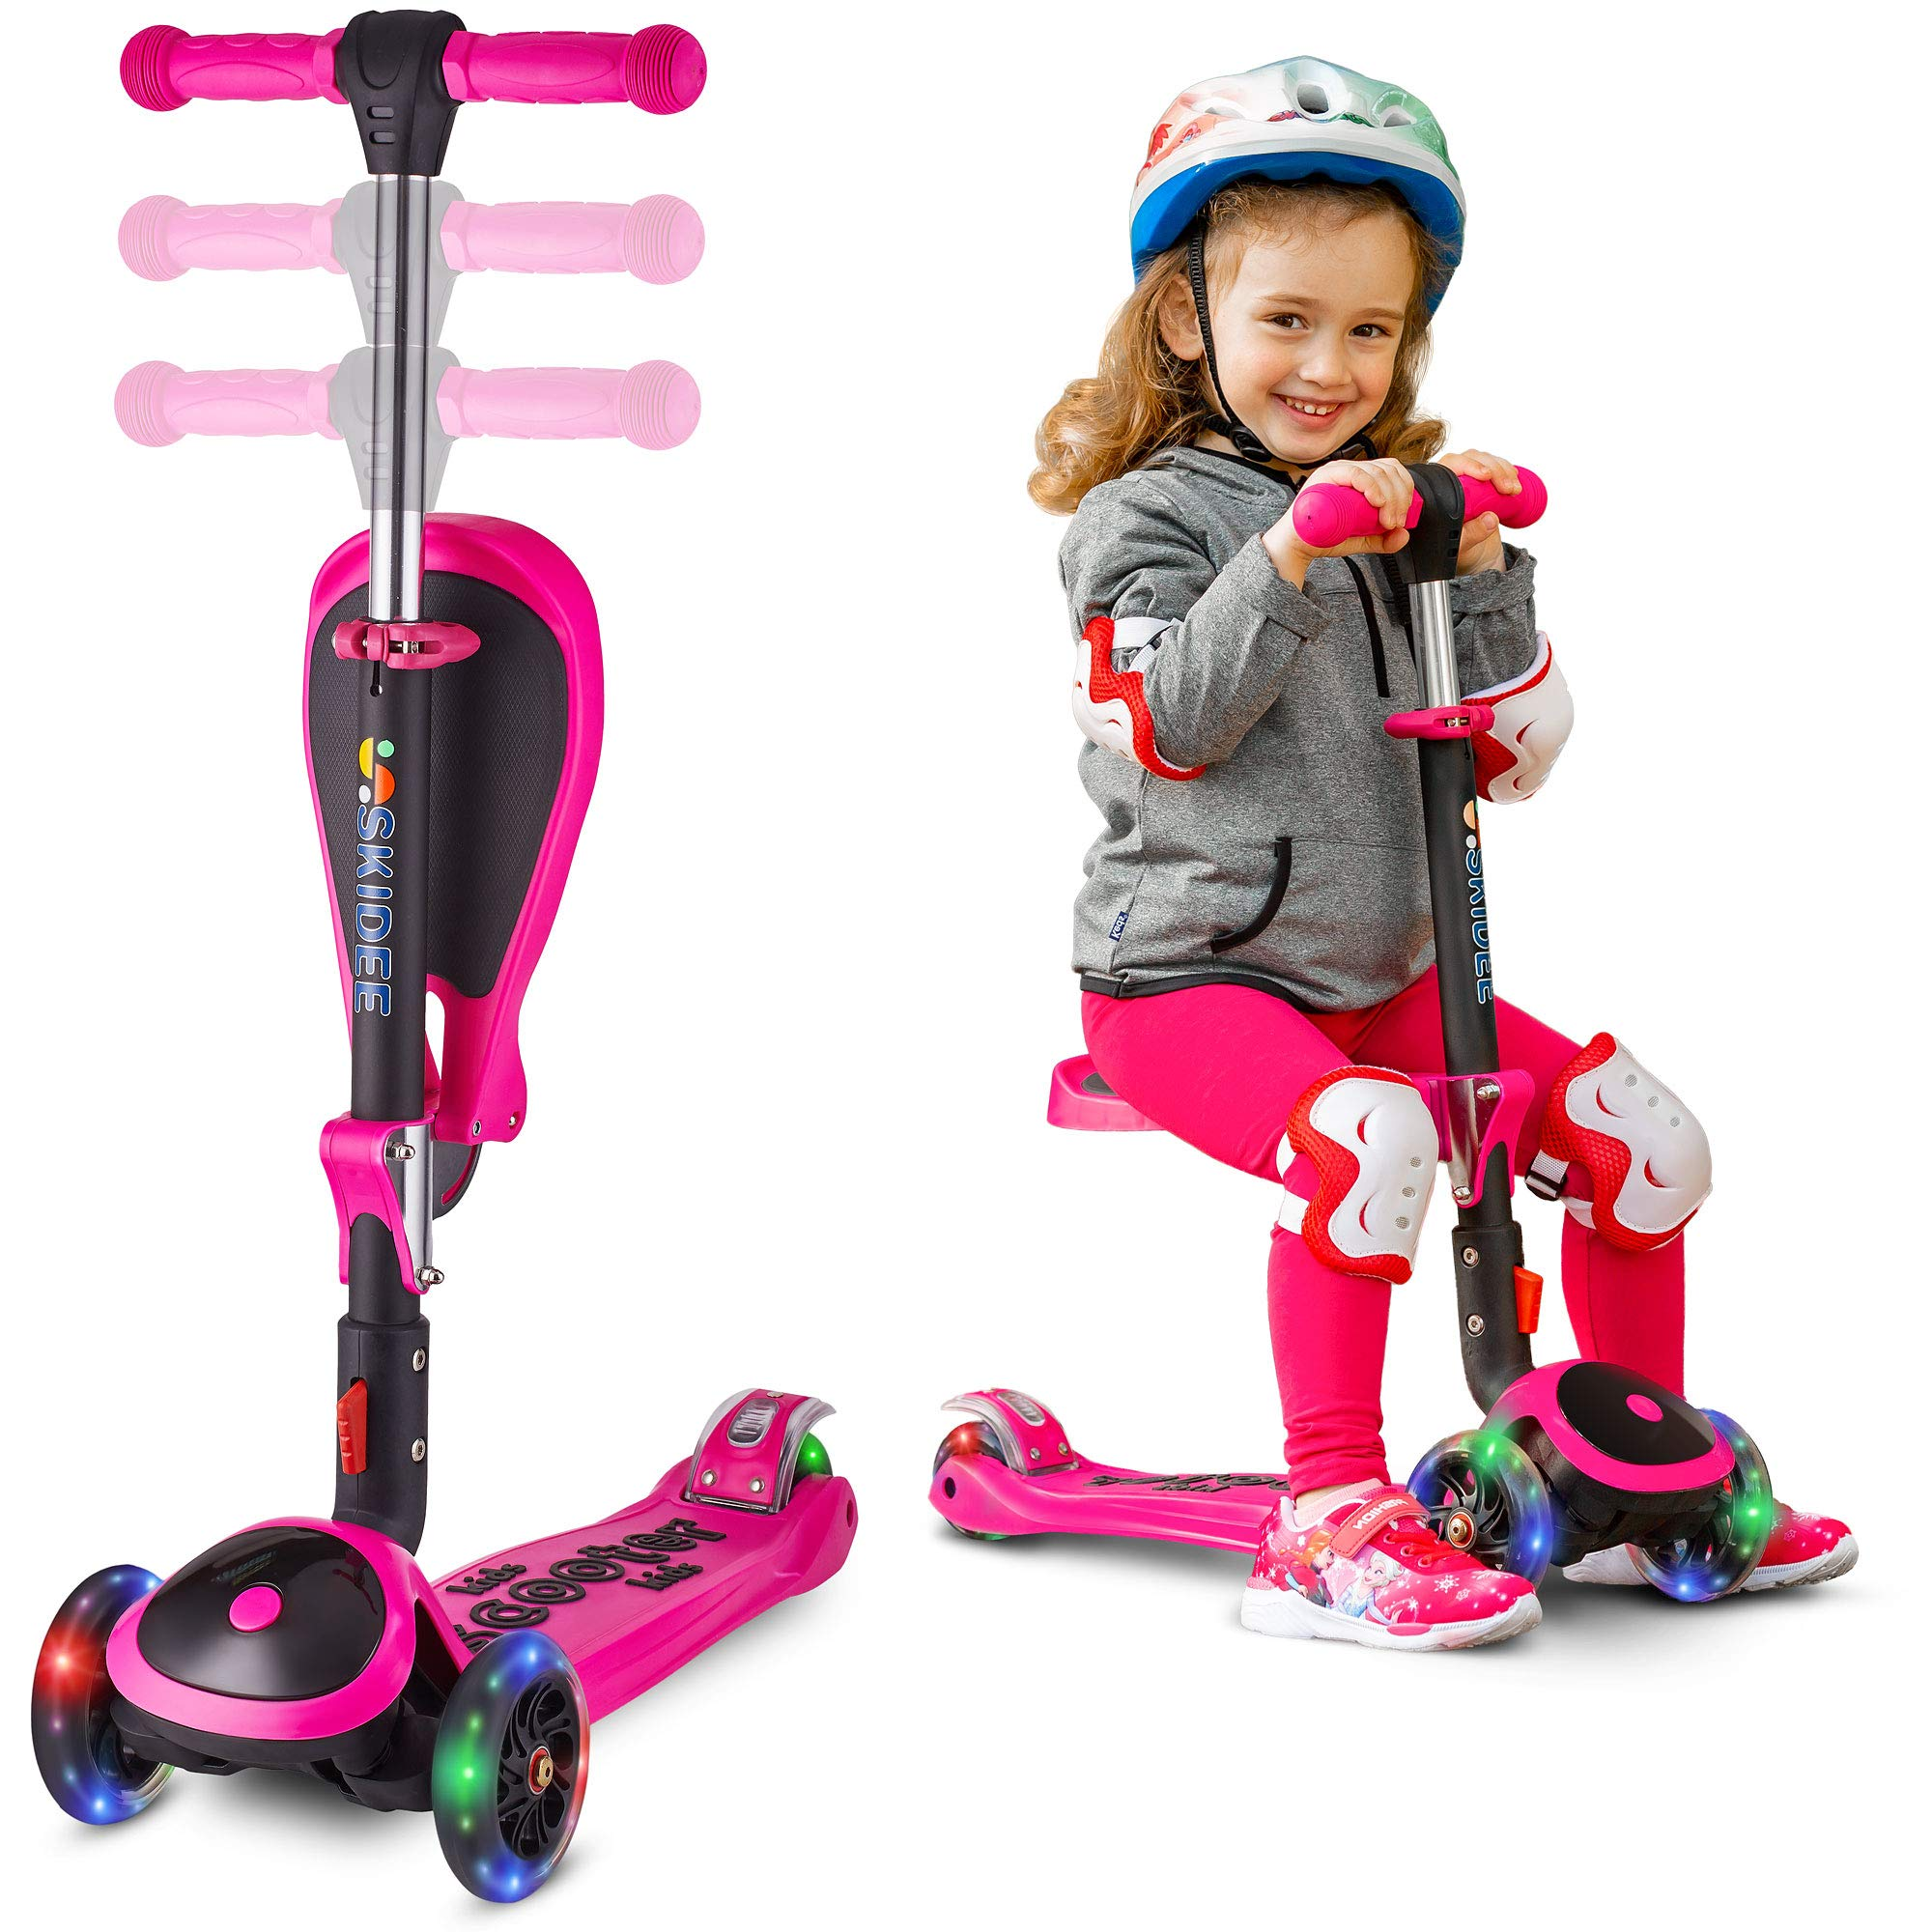 Scooter for Kids with Folding Seat - New 2-in-1 Adjustable 3 Wheel Kick Scooter for Toddlers Girls & Boys - Fun Outdoor Toys for Kids Fitness, Outside Games, Kid Activities - Boy & Girl Toys - Y200 by S SKIDEE